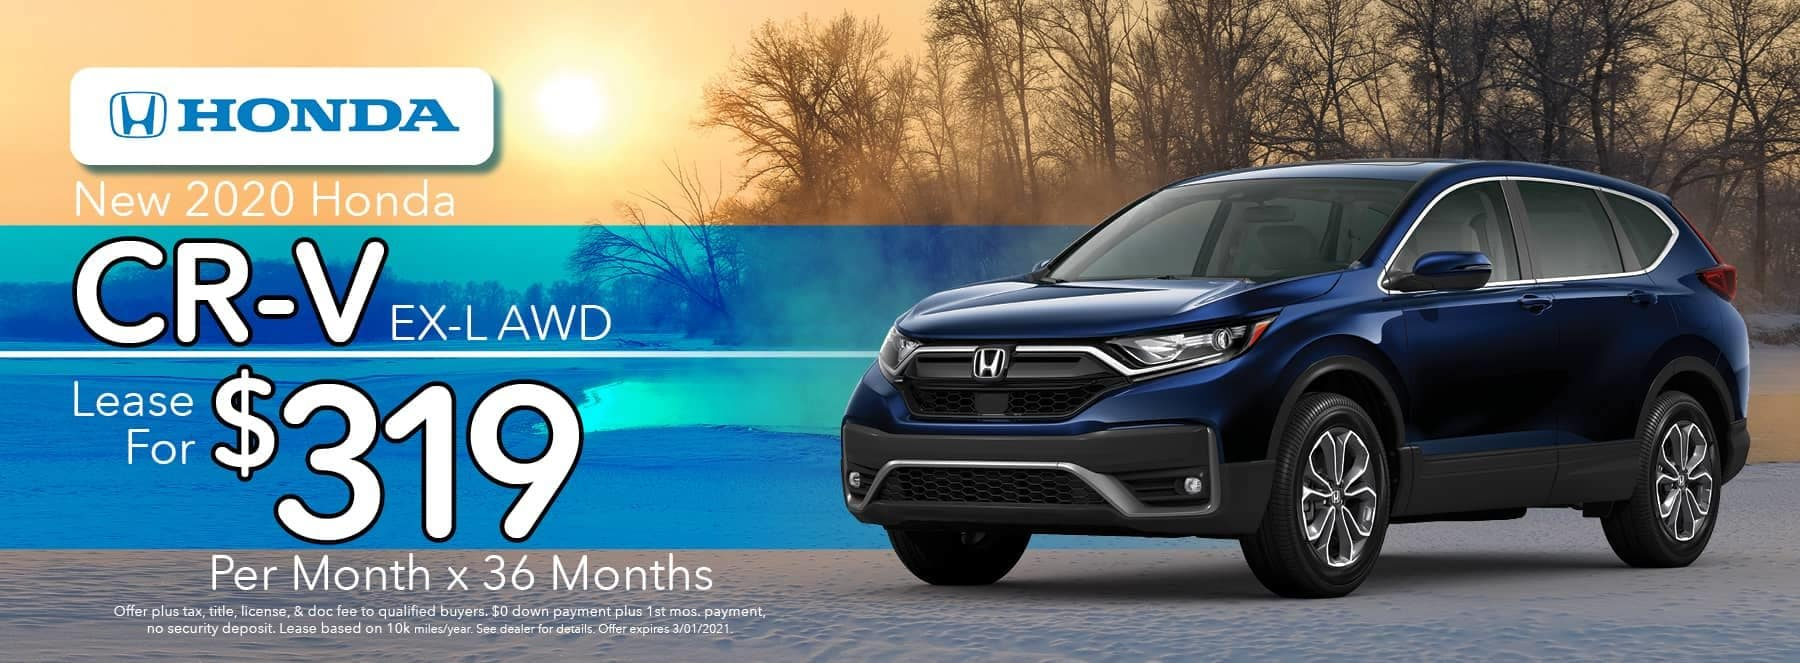 New 2020 Honda CR-V EX-LAWD - Lease for $319 per Month for 36 Months